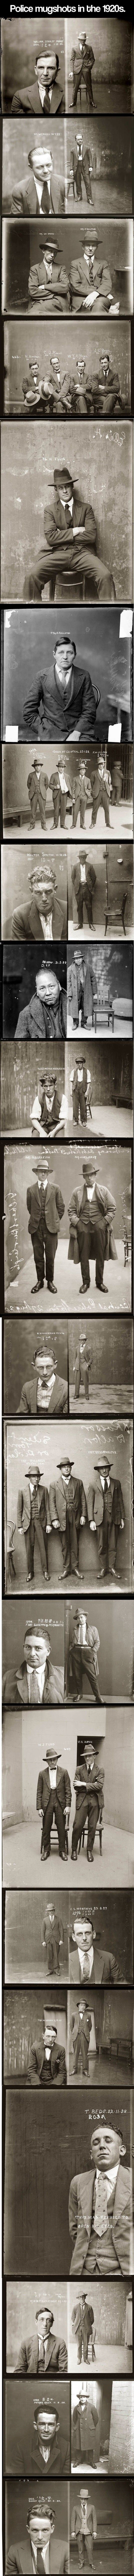 Police mugshots in the 1920s… – One Stop Humor: Funny Pictures and Videos!